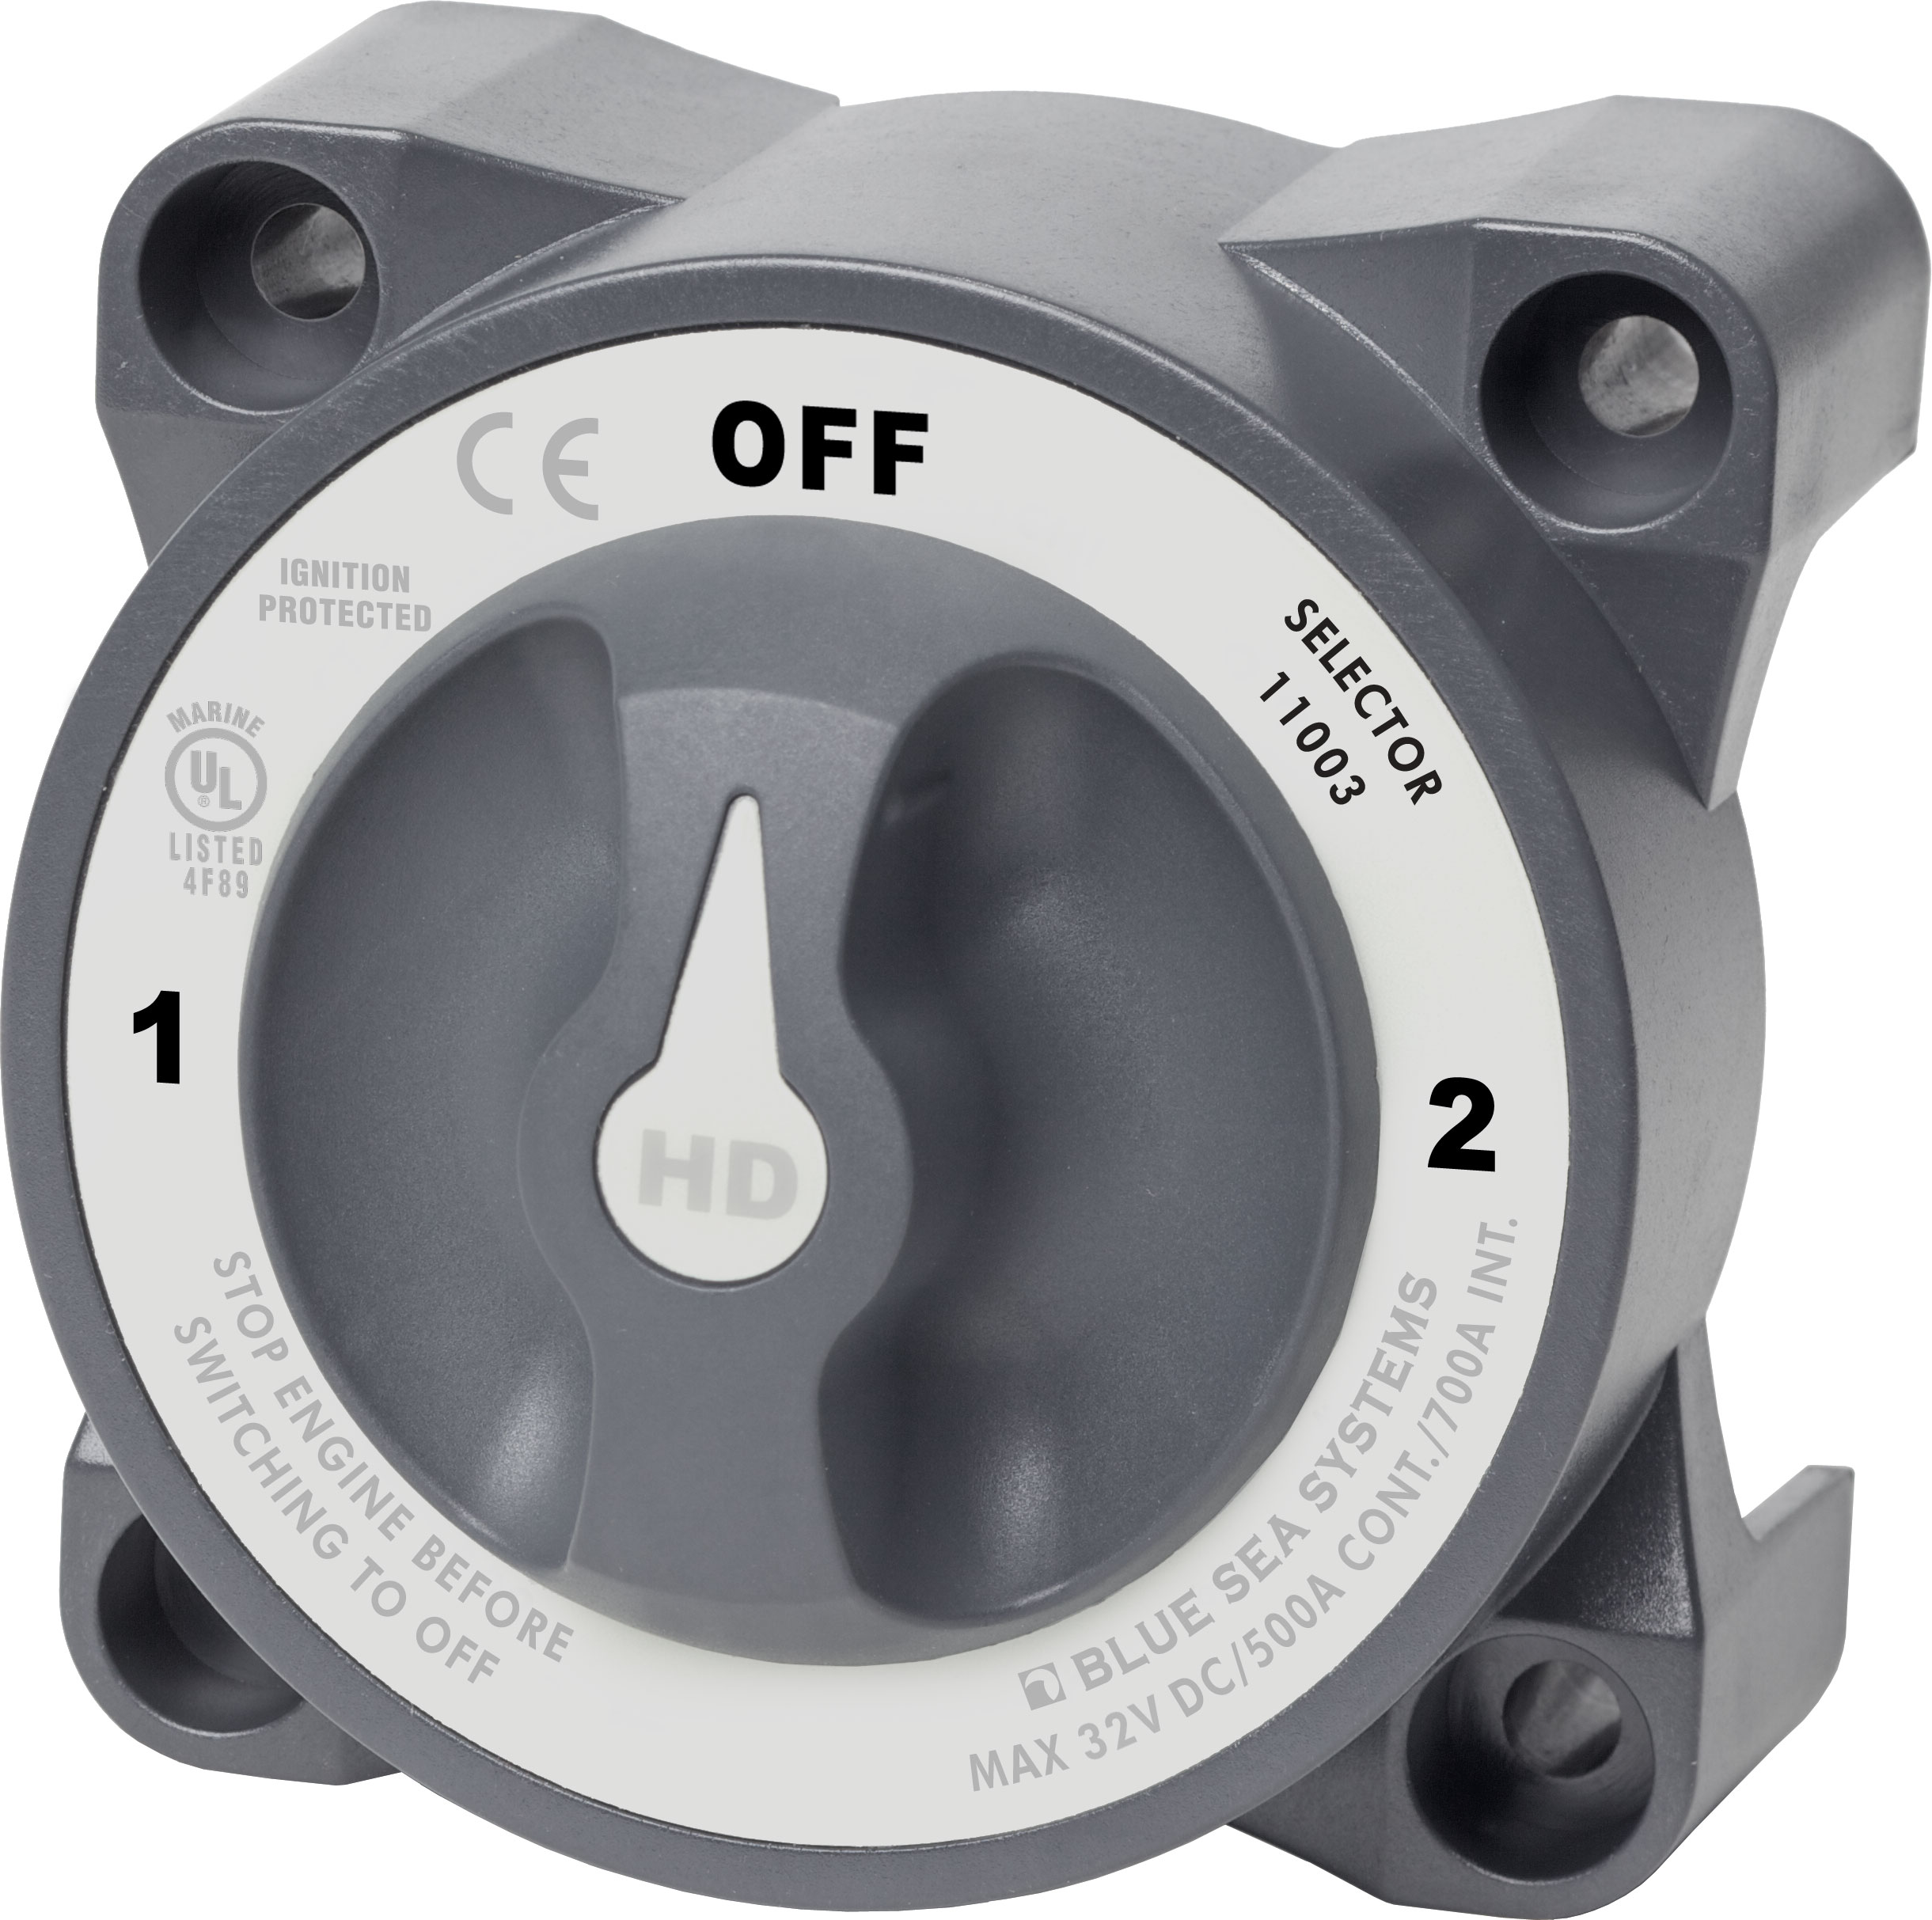 Hd-series Heavy Duty 3 Position Selector Battery Switch With Afd